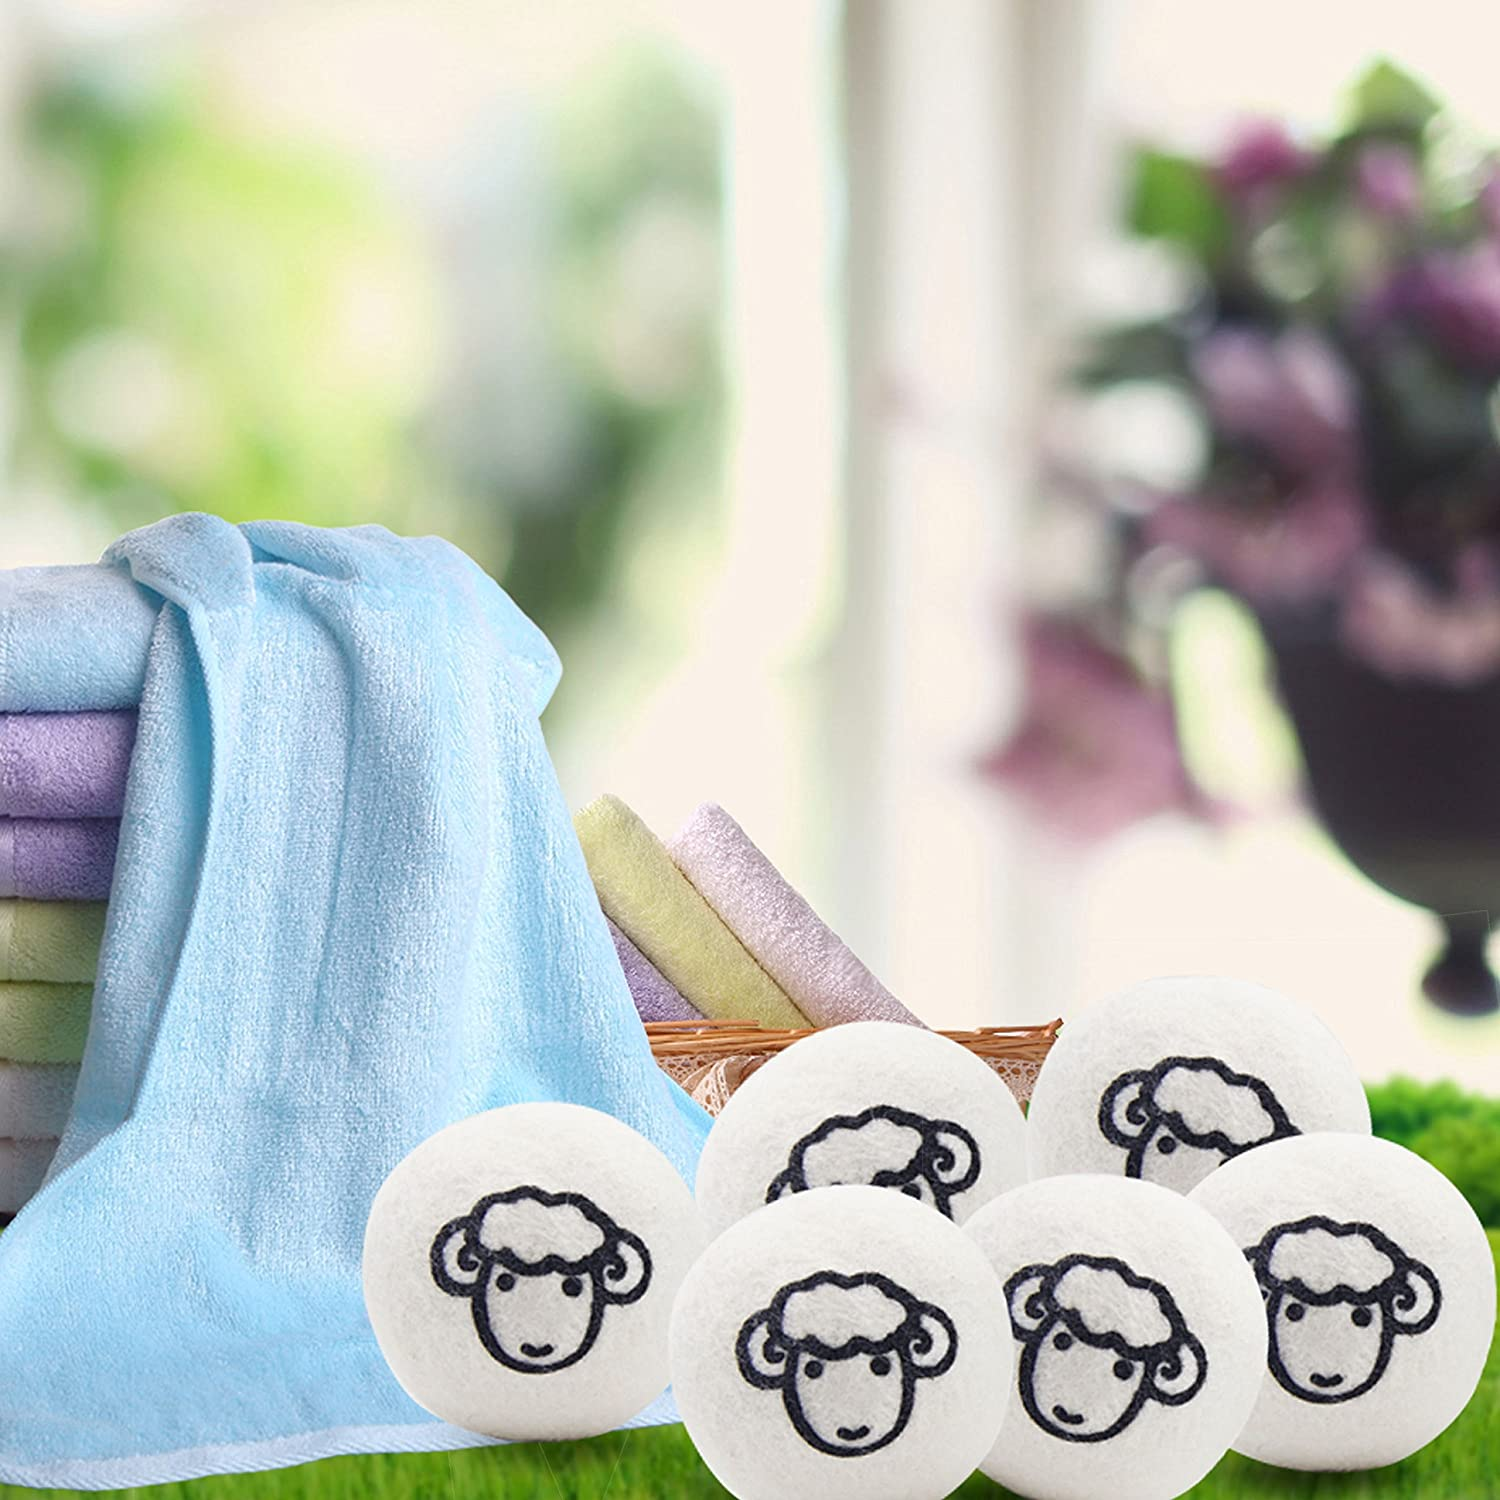 Reusable Natural Non-Toxic Fabric Softener Static Reducer Reduces Drying Time Echoss Wool Dryer Balls Organic 6 Pack XL 100/% Pure New Zealand Wool